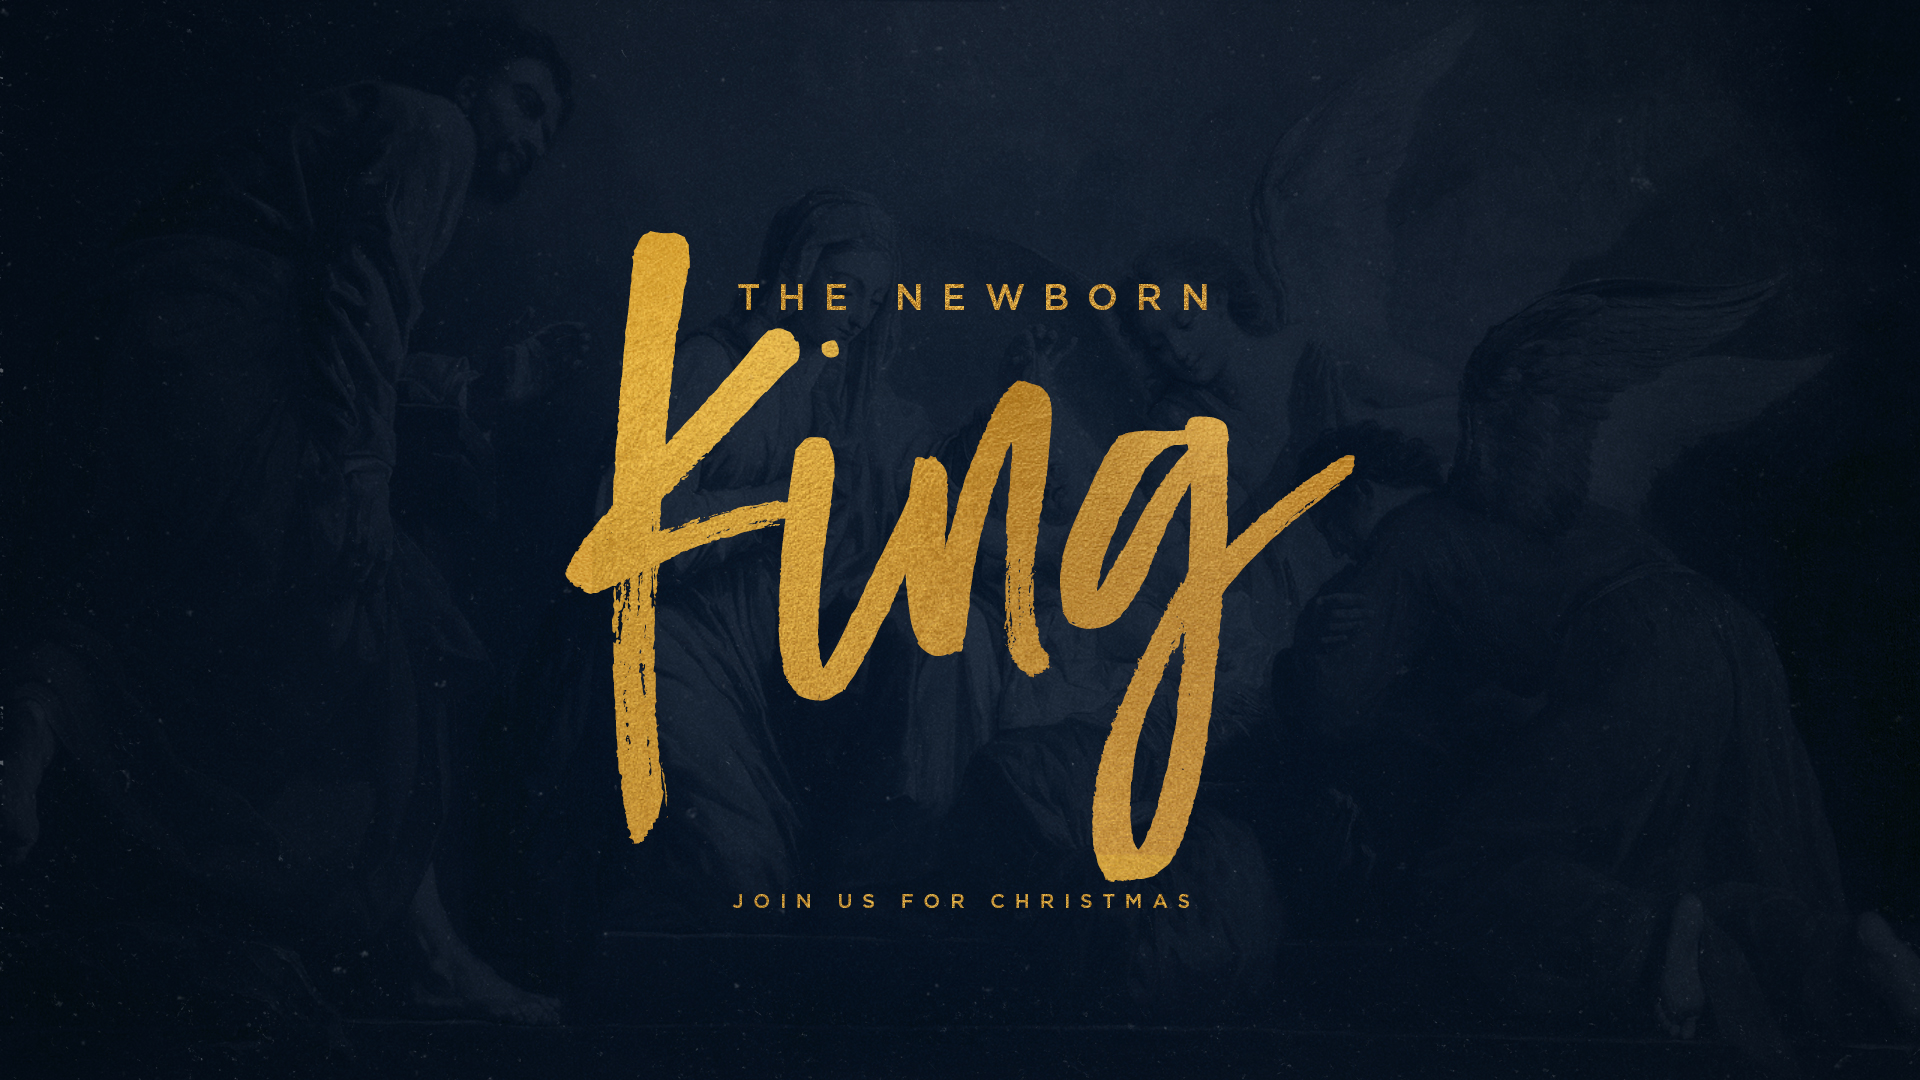 The Newborn King-Subtitle